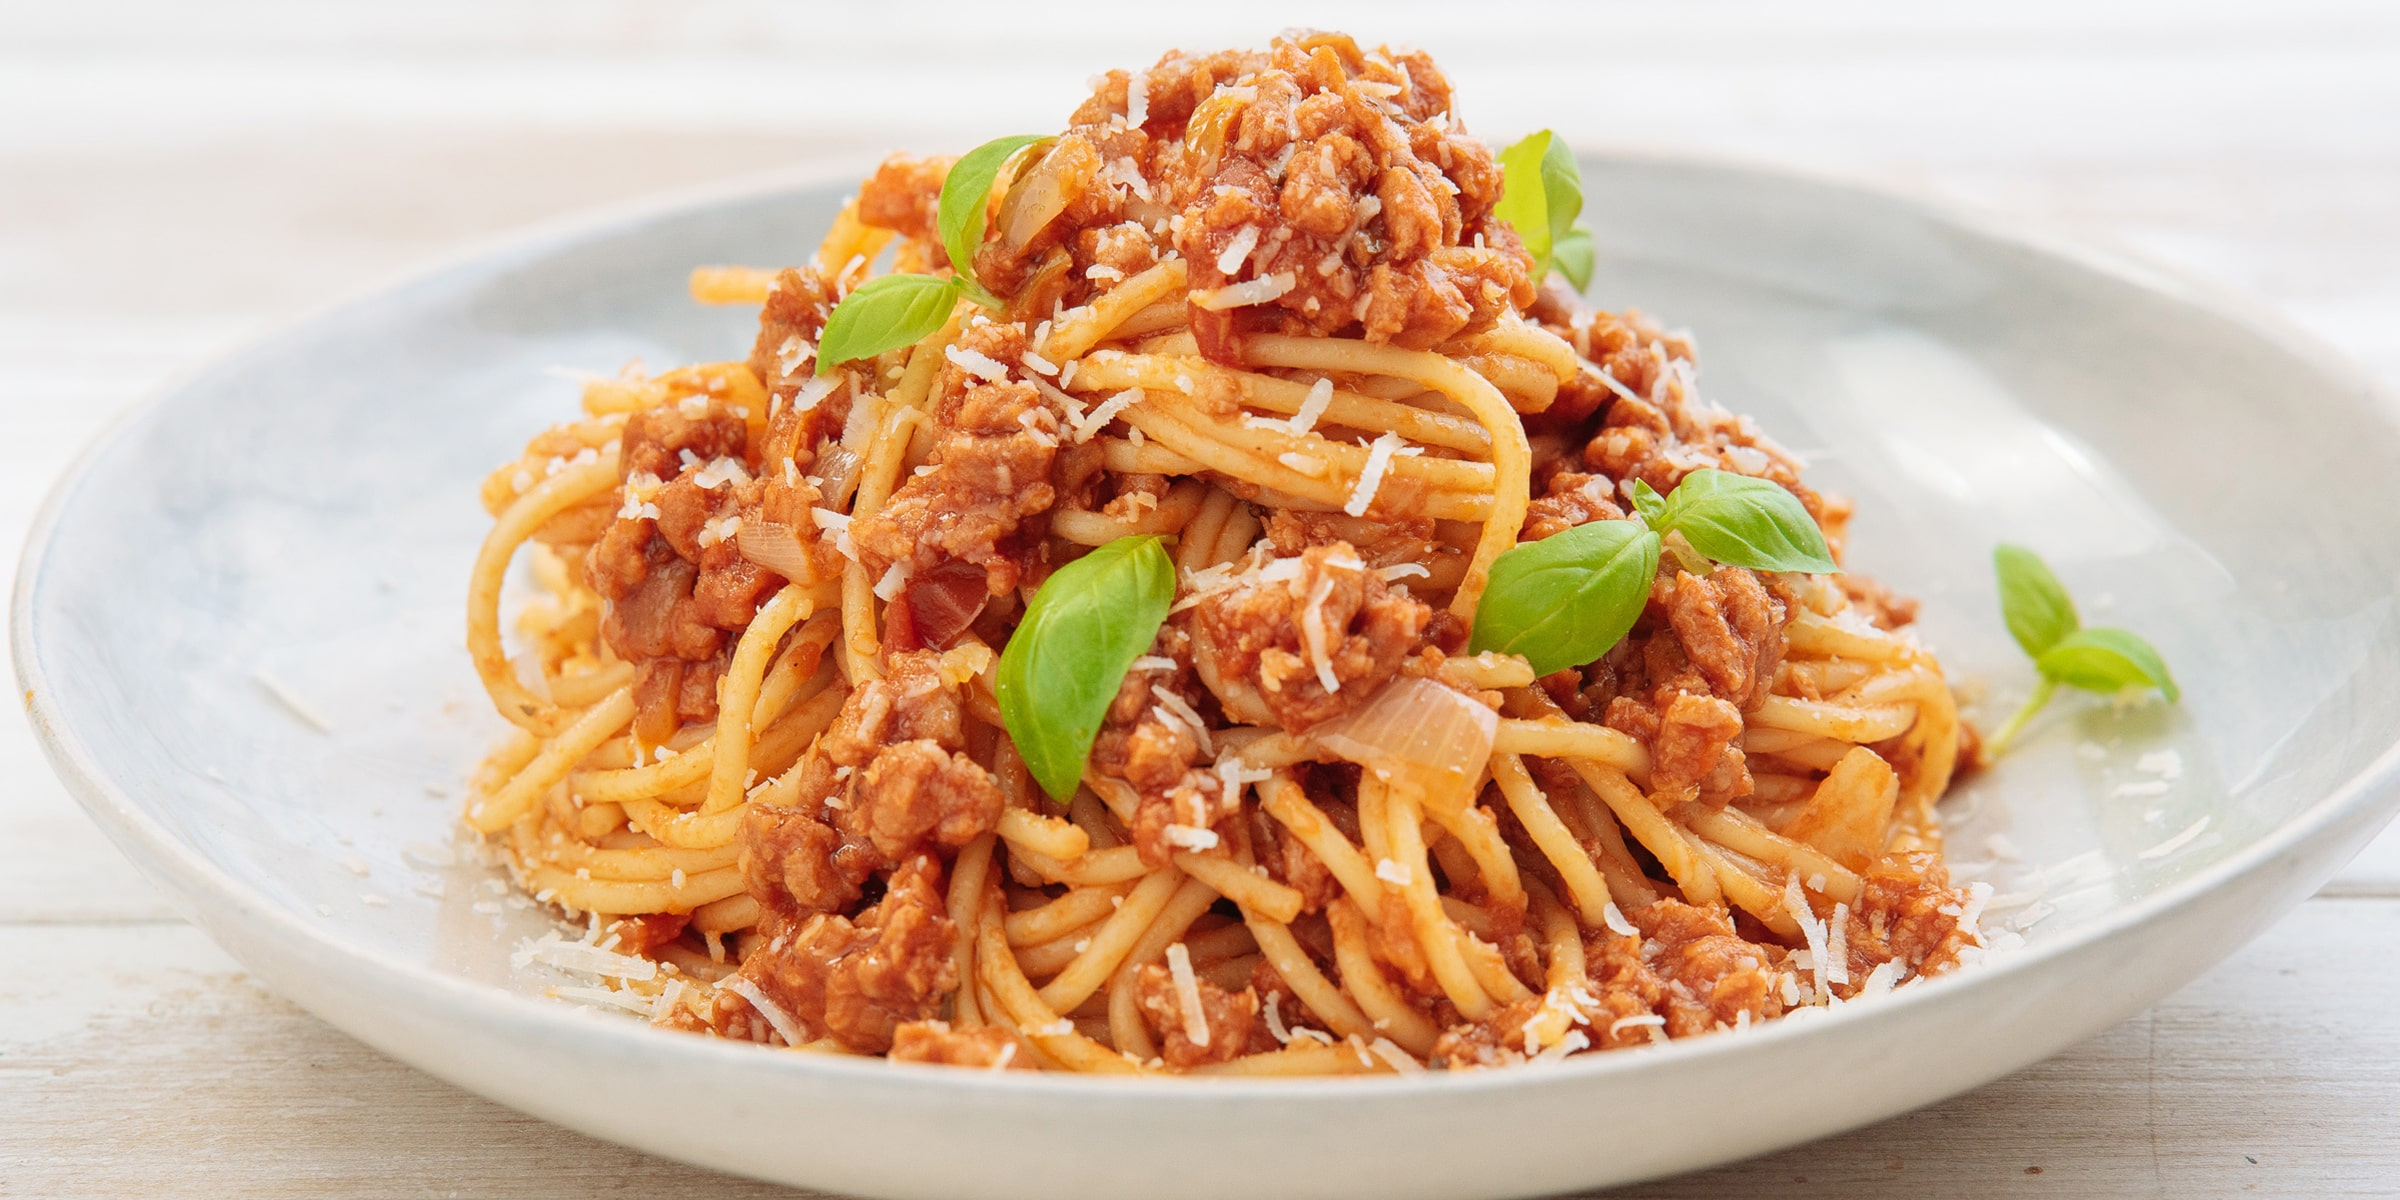 Meat-free spaghetti Bolognese with Meatless Farm mince, topped with Parmesan and herbs